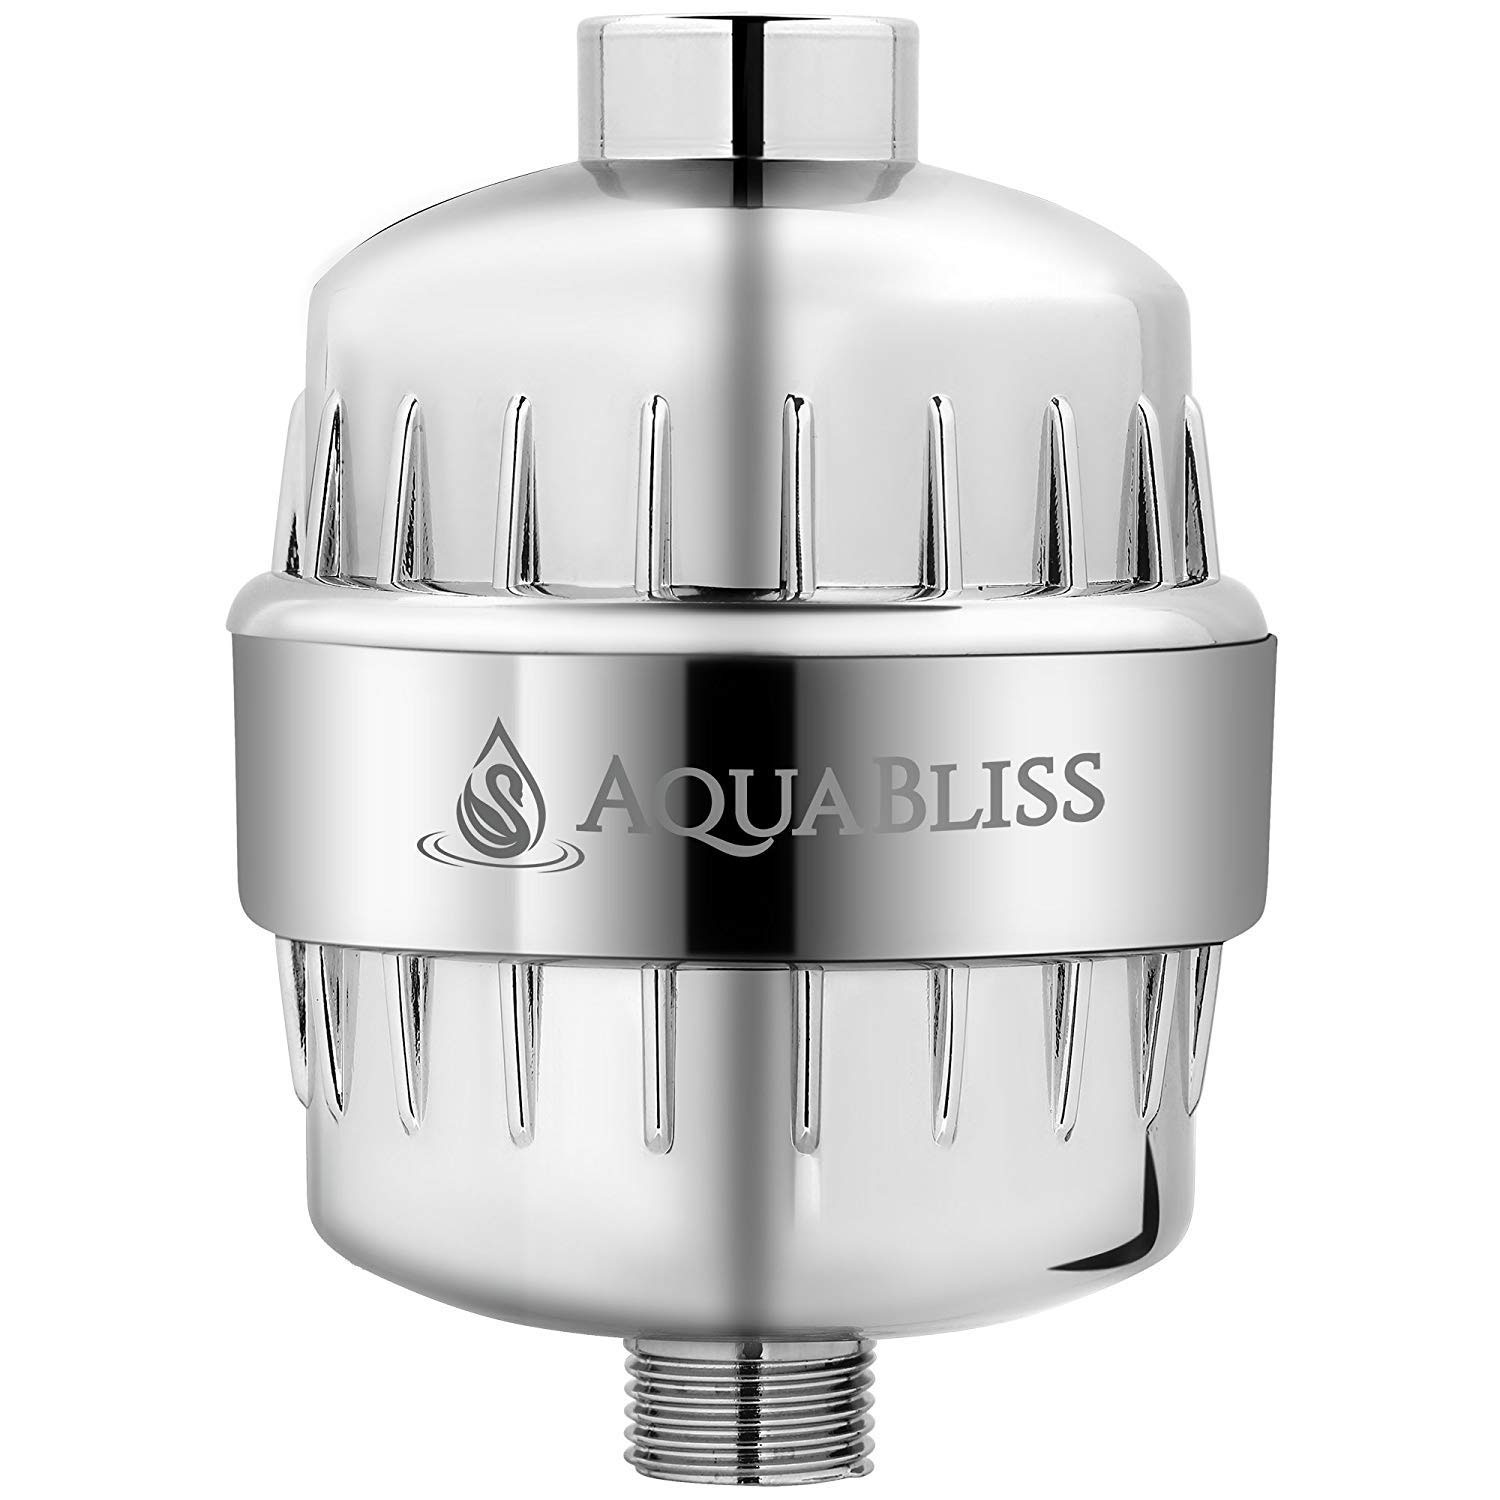 AquaBliss High Output Revitalizing Shower Filter Reduces Dry Itchy Skin, Dandruff